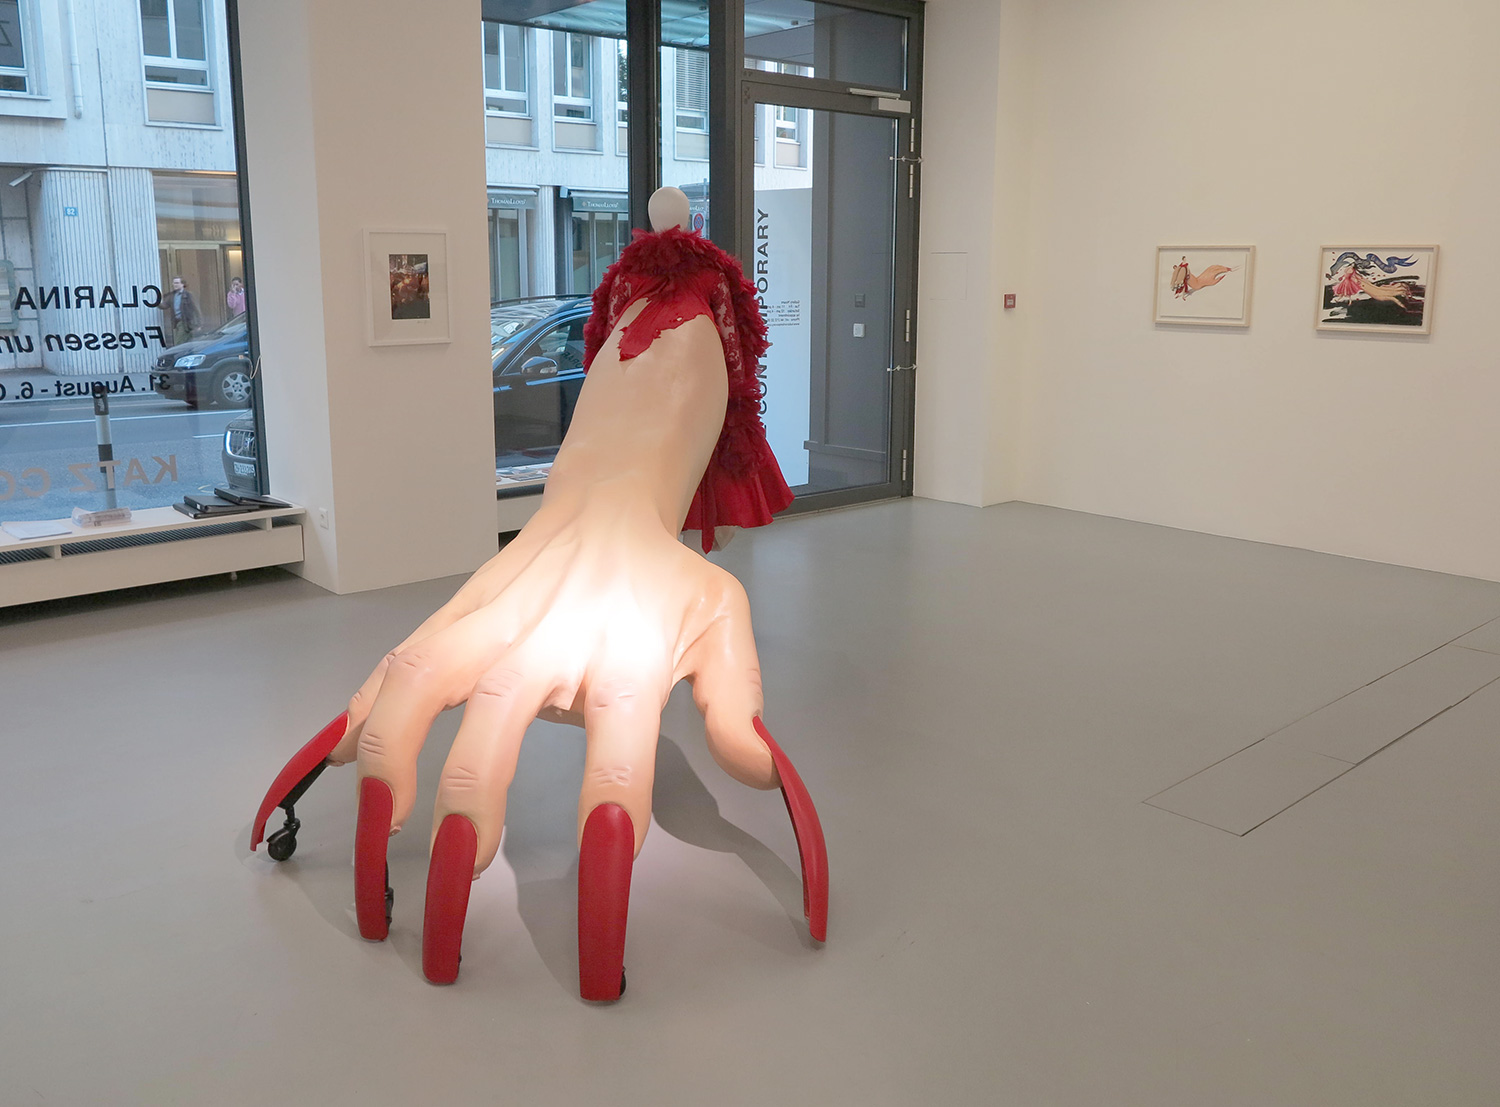 THE MUSE DISPLAYED AT KATZ CONTEMPORARY GALLERY IN ZURICH